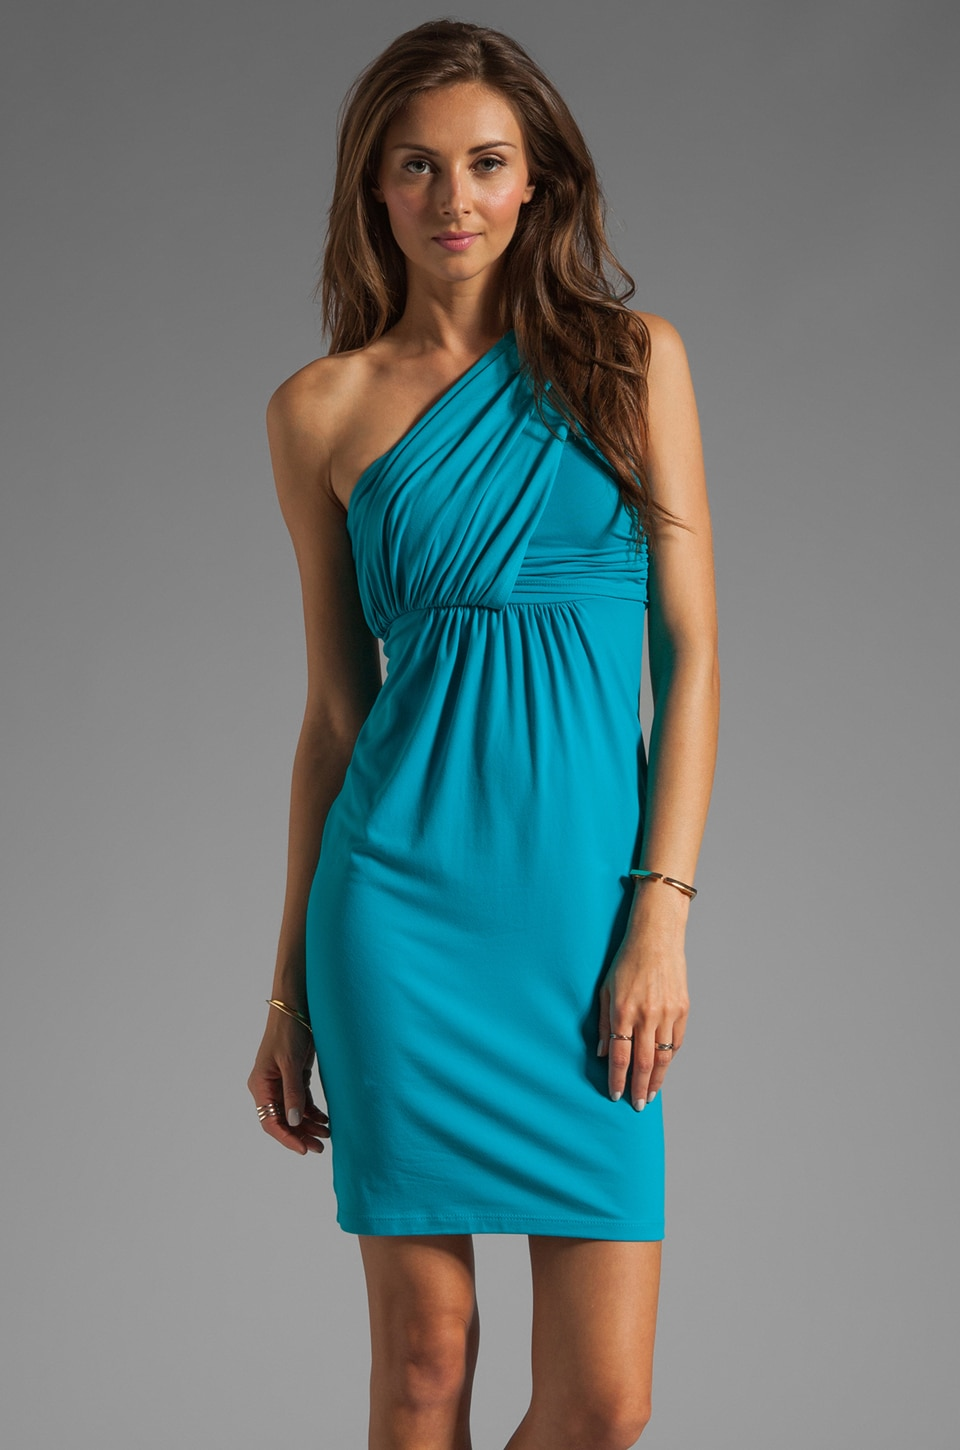 Susana Monaco Light Supplex Carrie One Shoulder Dress in Poseidon